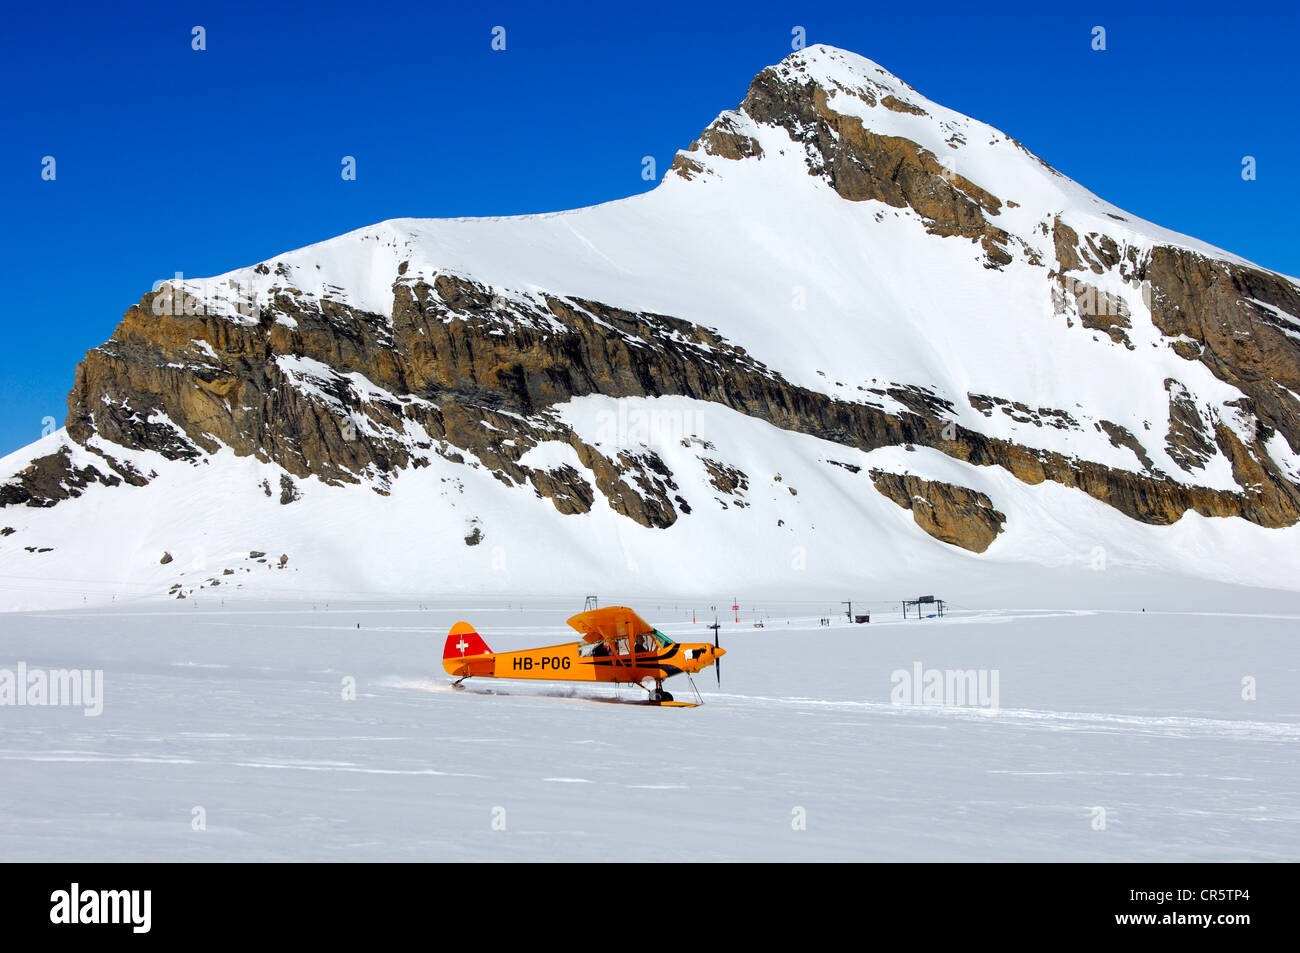 Takeoff of a Piper PA-18 Super Cub on the snow-covered Glacier de Tsanfleuron mountain airfield at the foot of Oldenhorn - Stock Image